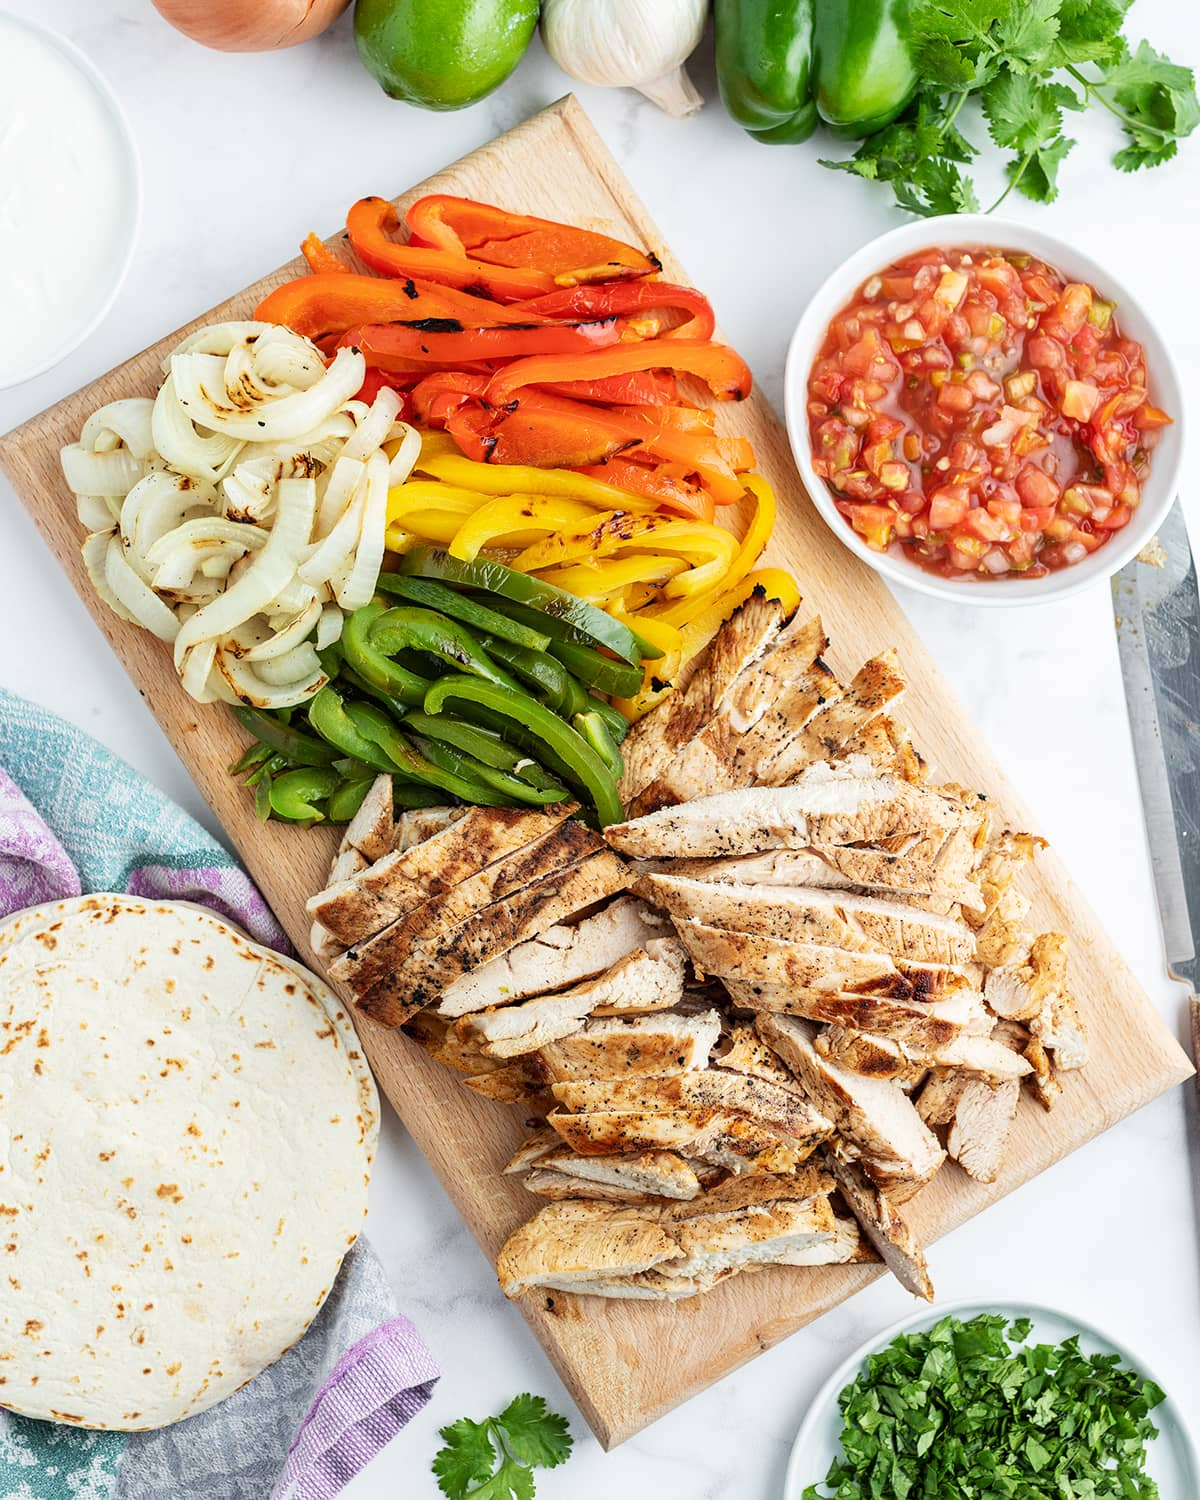 A tray of ingredients for chicken fajitas, with grilled chicken, bell peppers, and onion.